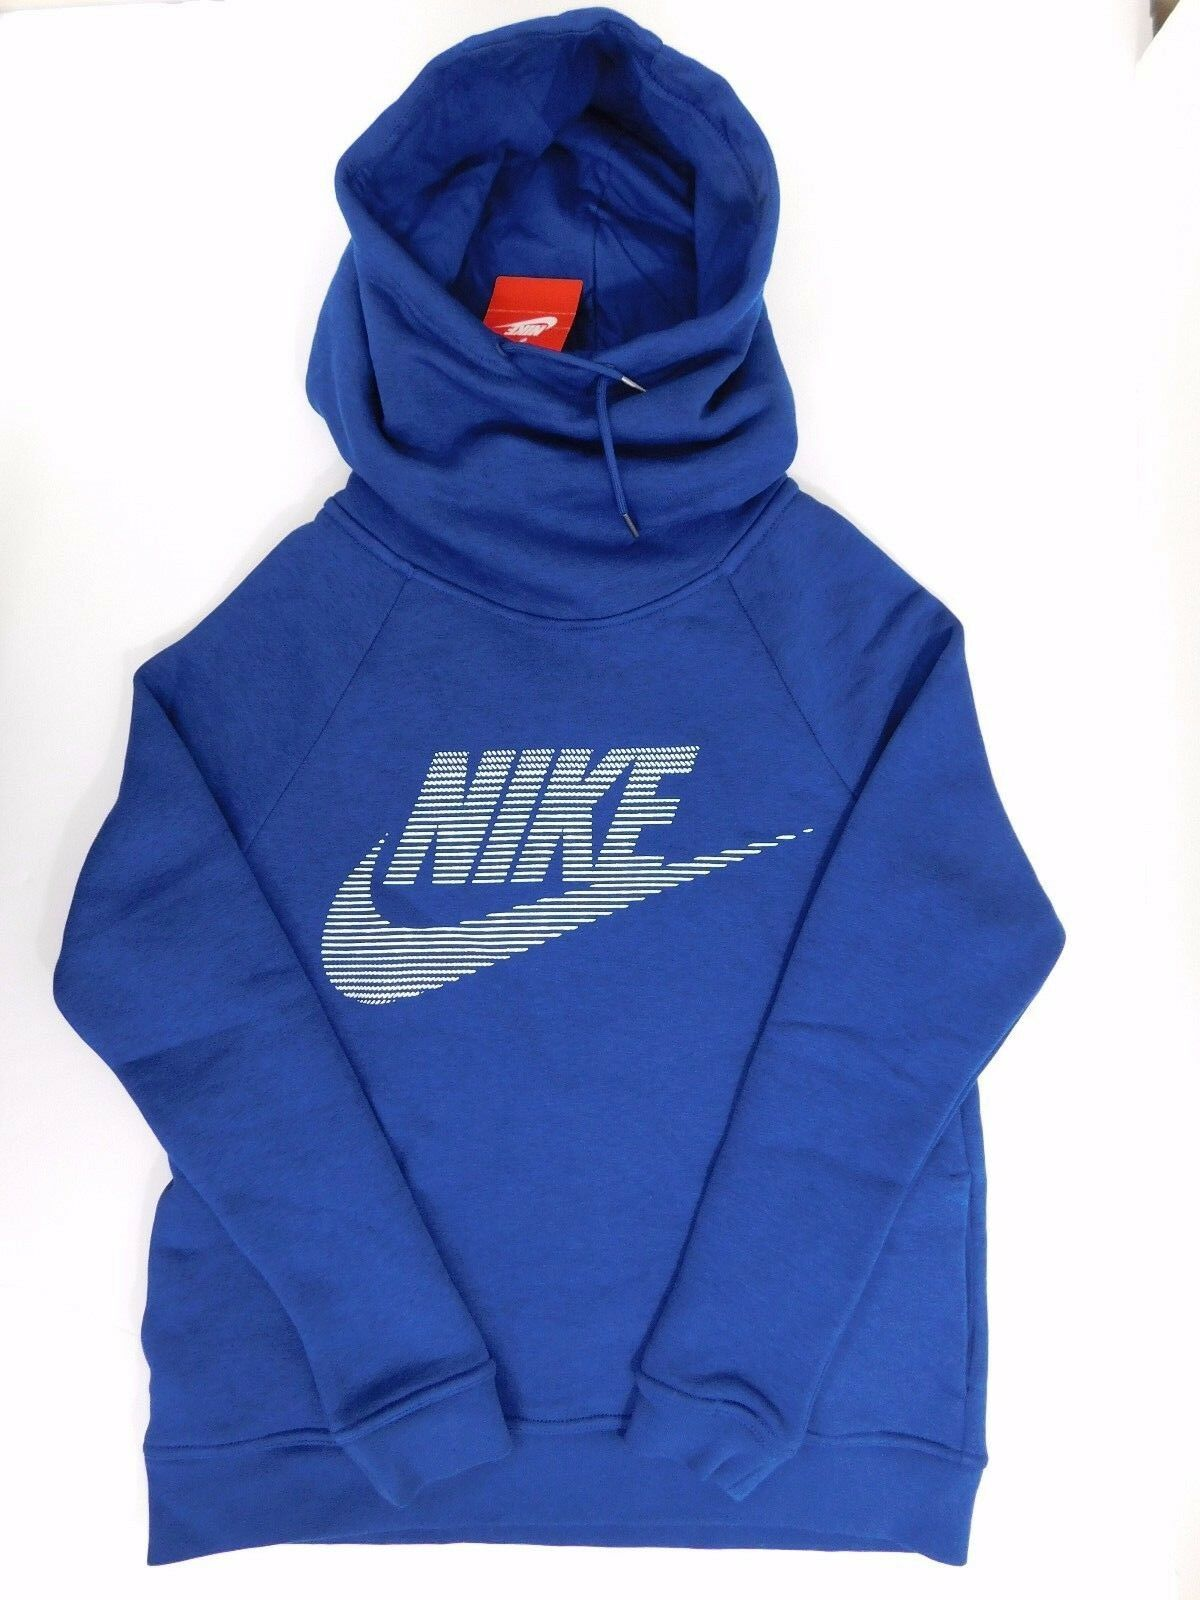 NEW WOMEN'S NIKE SPORT & CASUAL NAVY blueE HOODIE SIZE US M & S  807292423